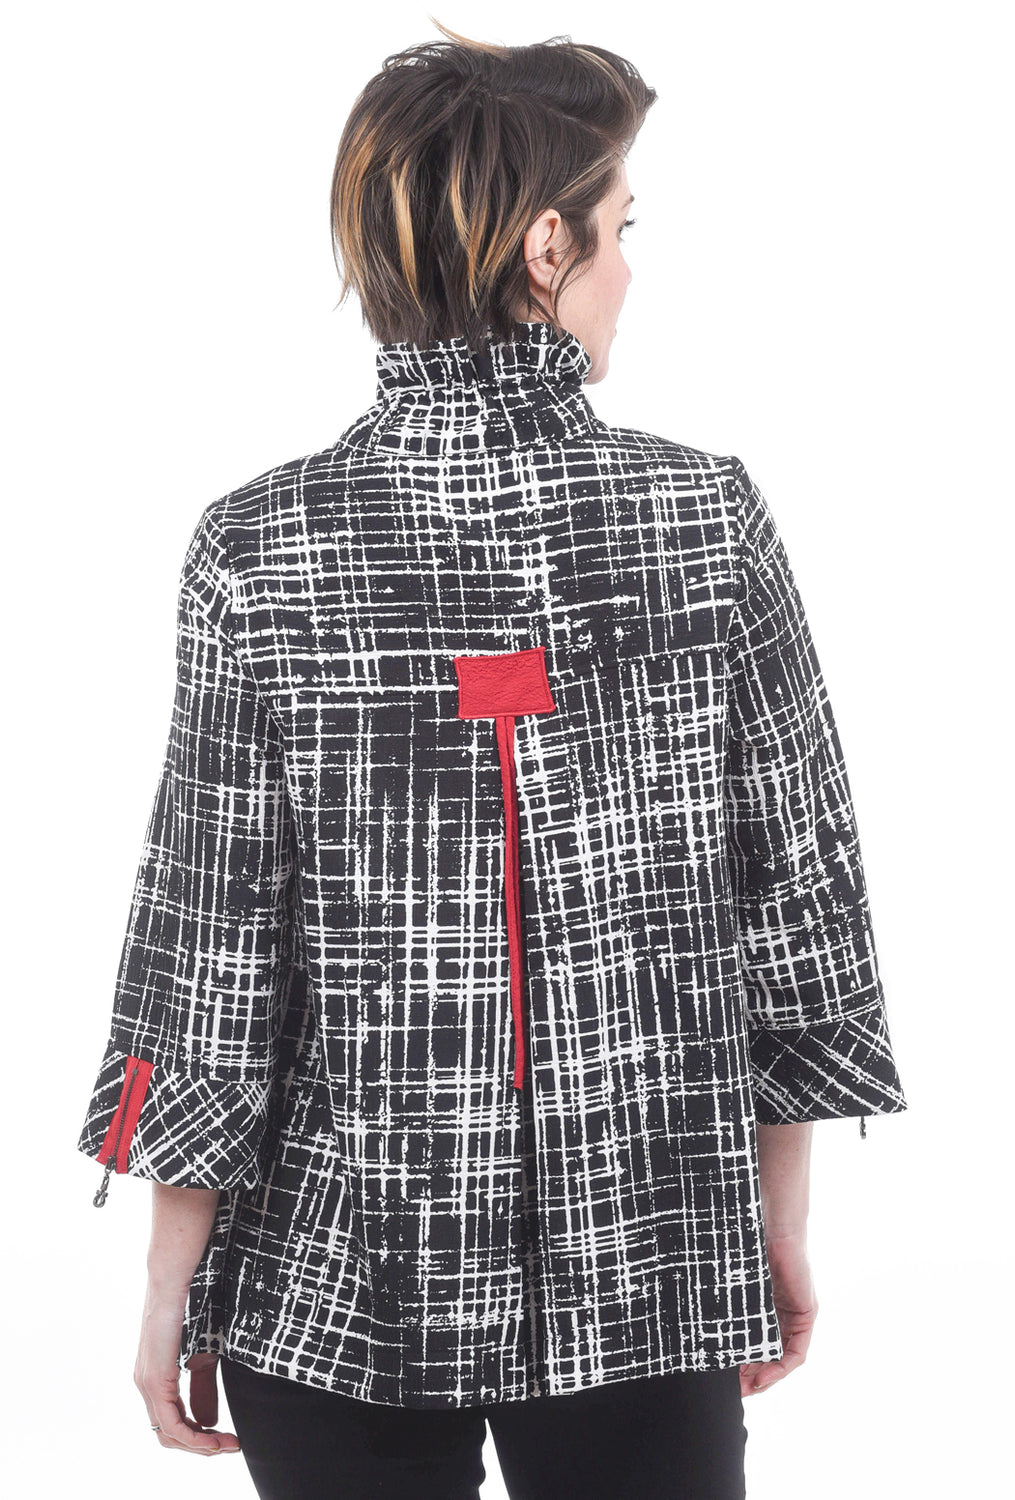 Moonlight Scarlet Touches Jacket, Black/White